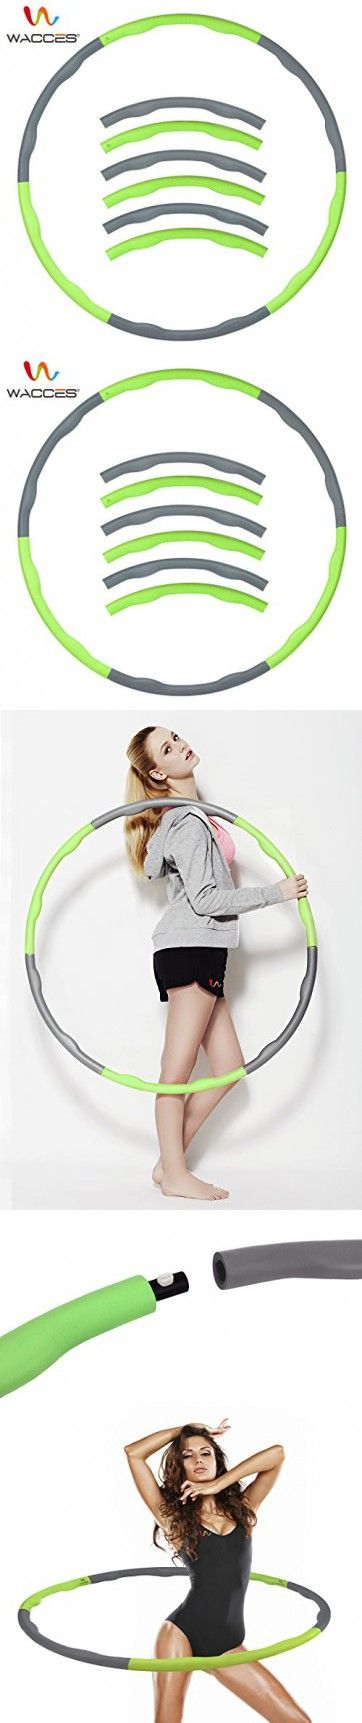 Hoop Yourself Slim With This Hula-Hoop Workout - Health